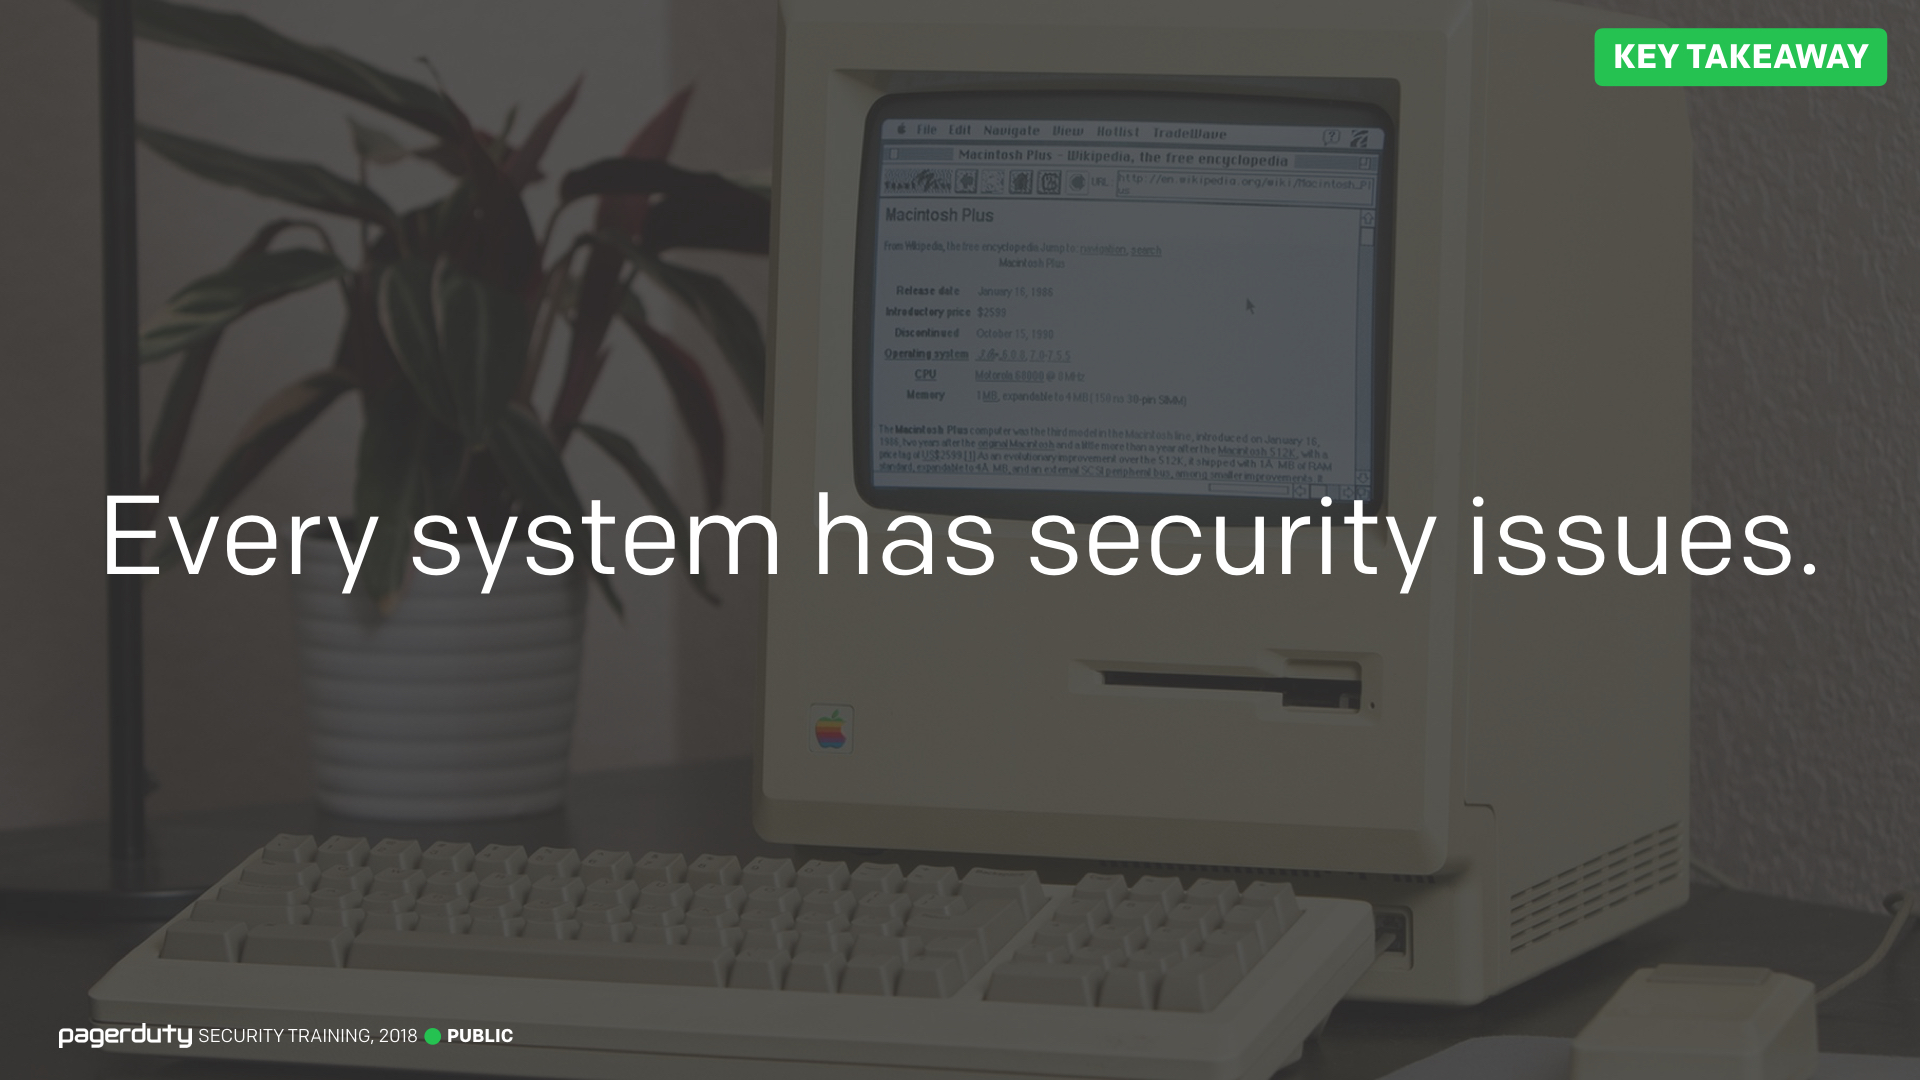 For Engineers - PagerDuty Security Training